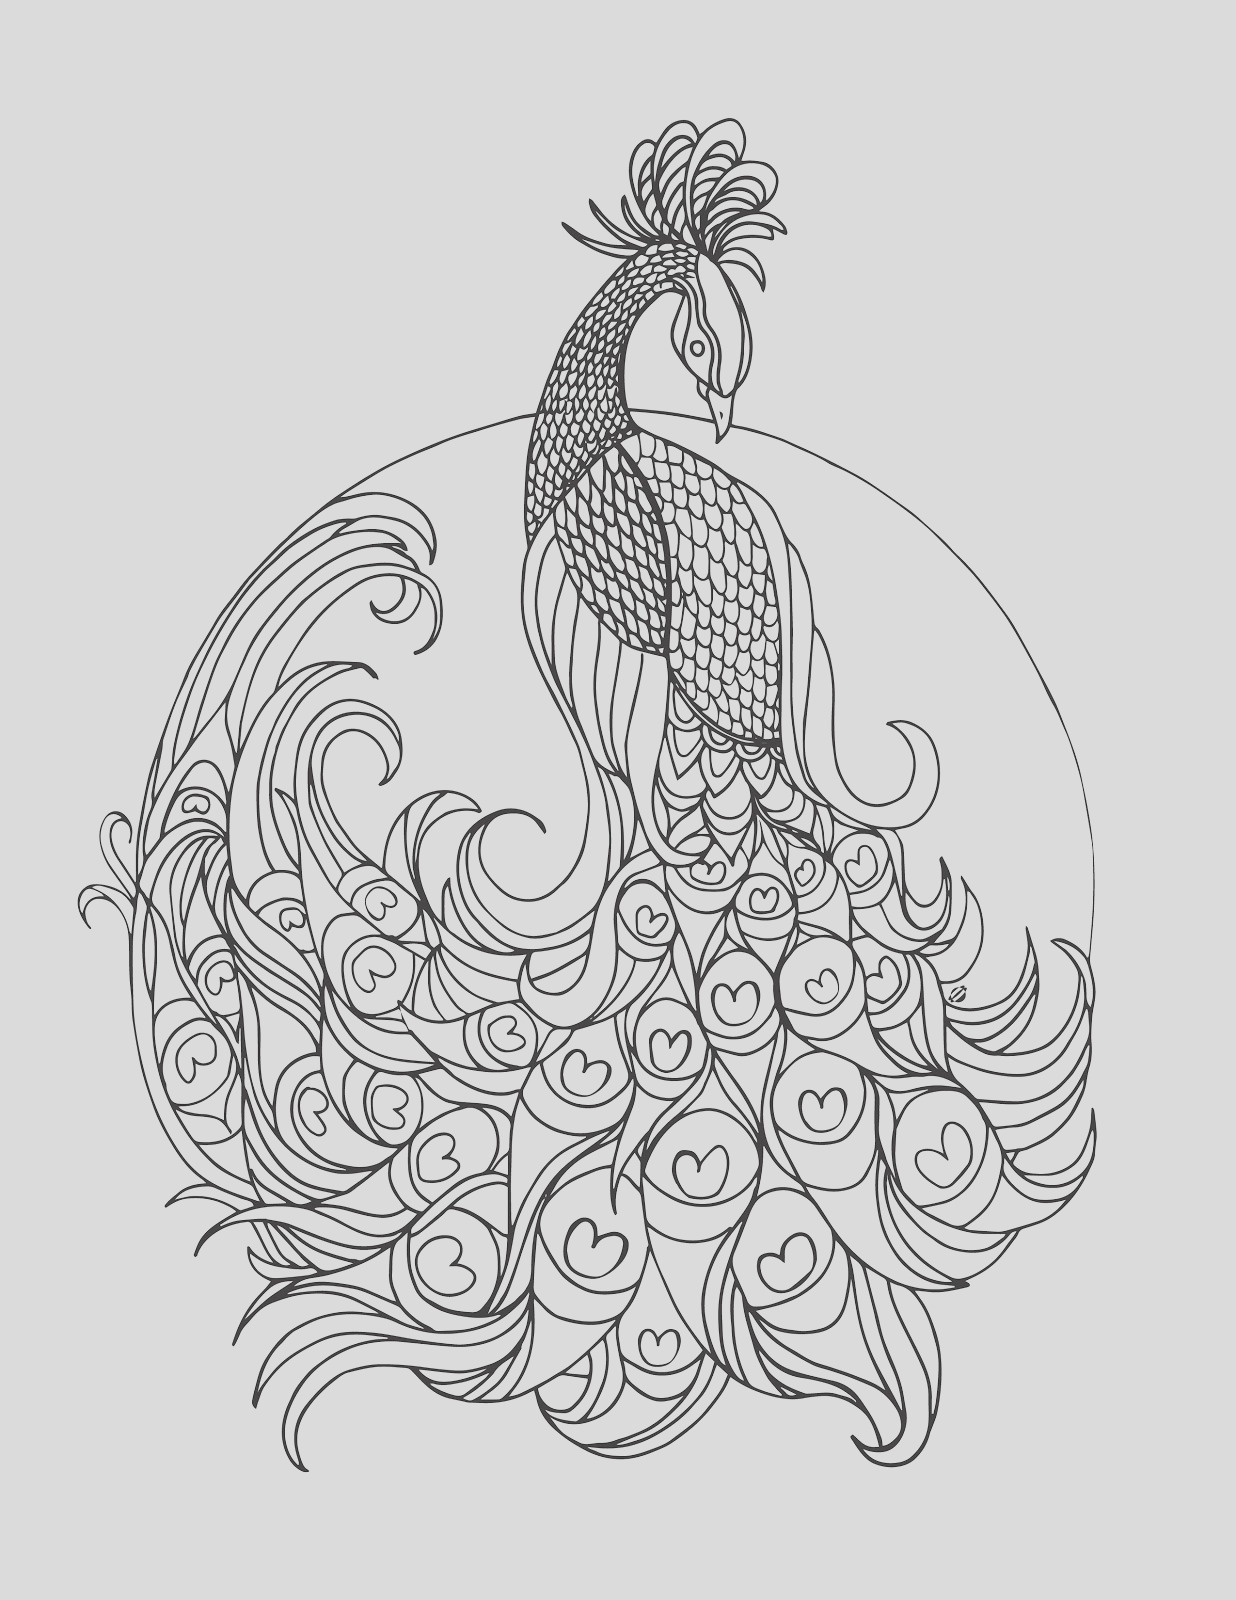 grown up colouring peacock